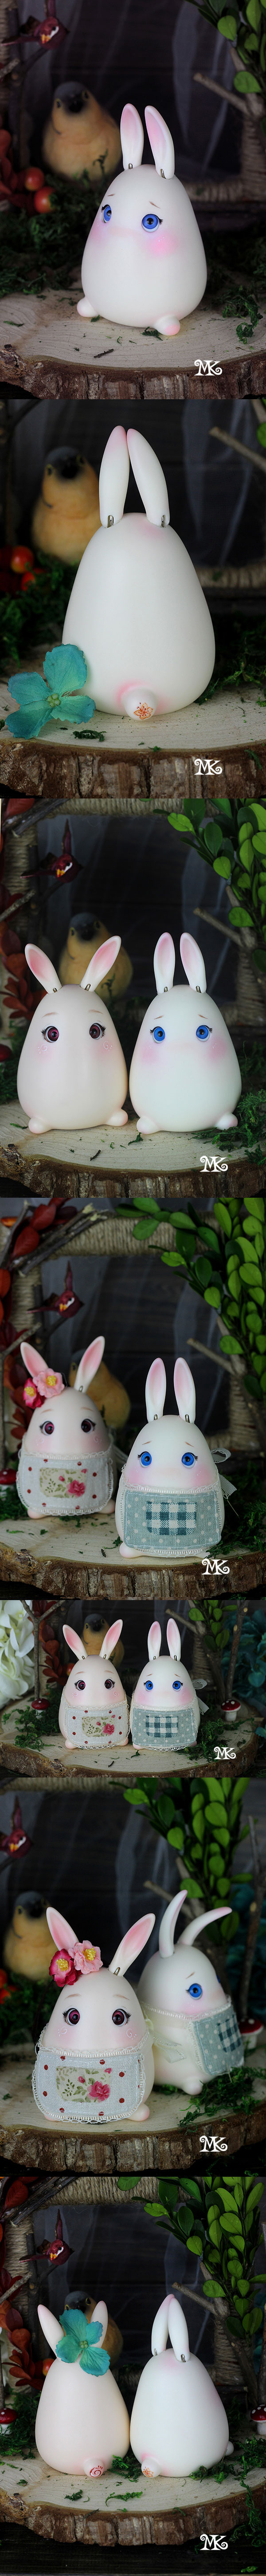 BJD's pet Snowy Rabbit Ball-jointed doll